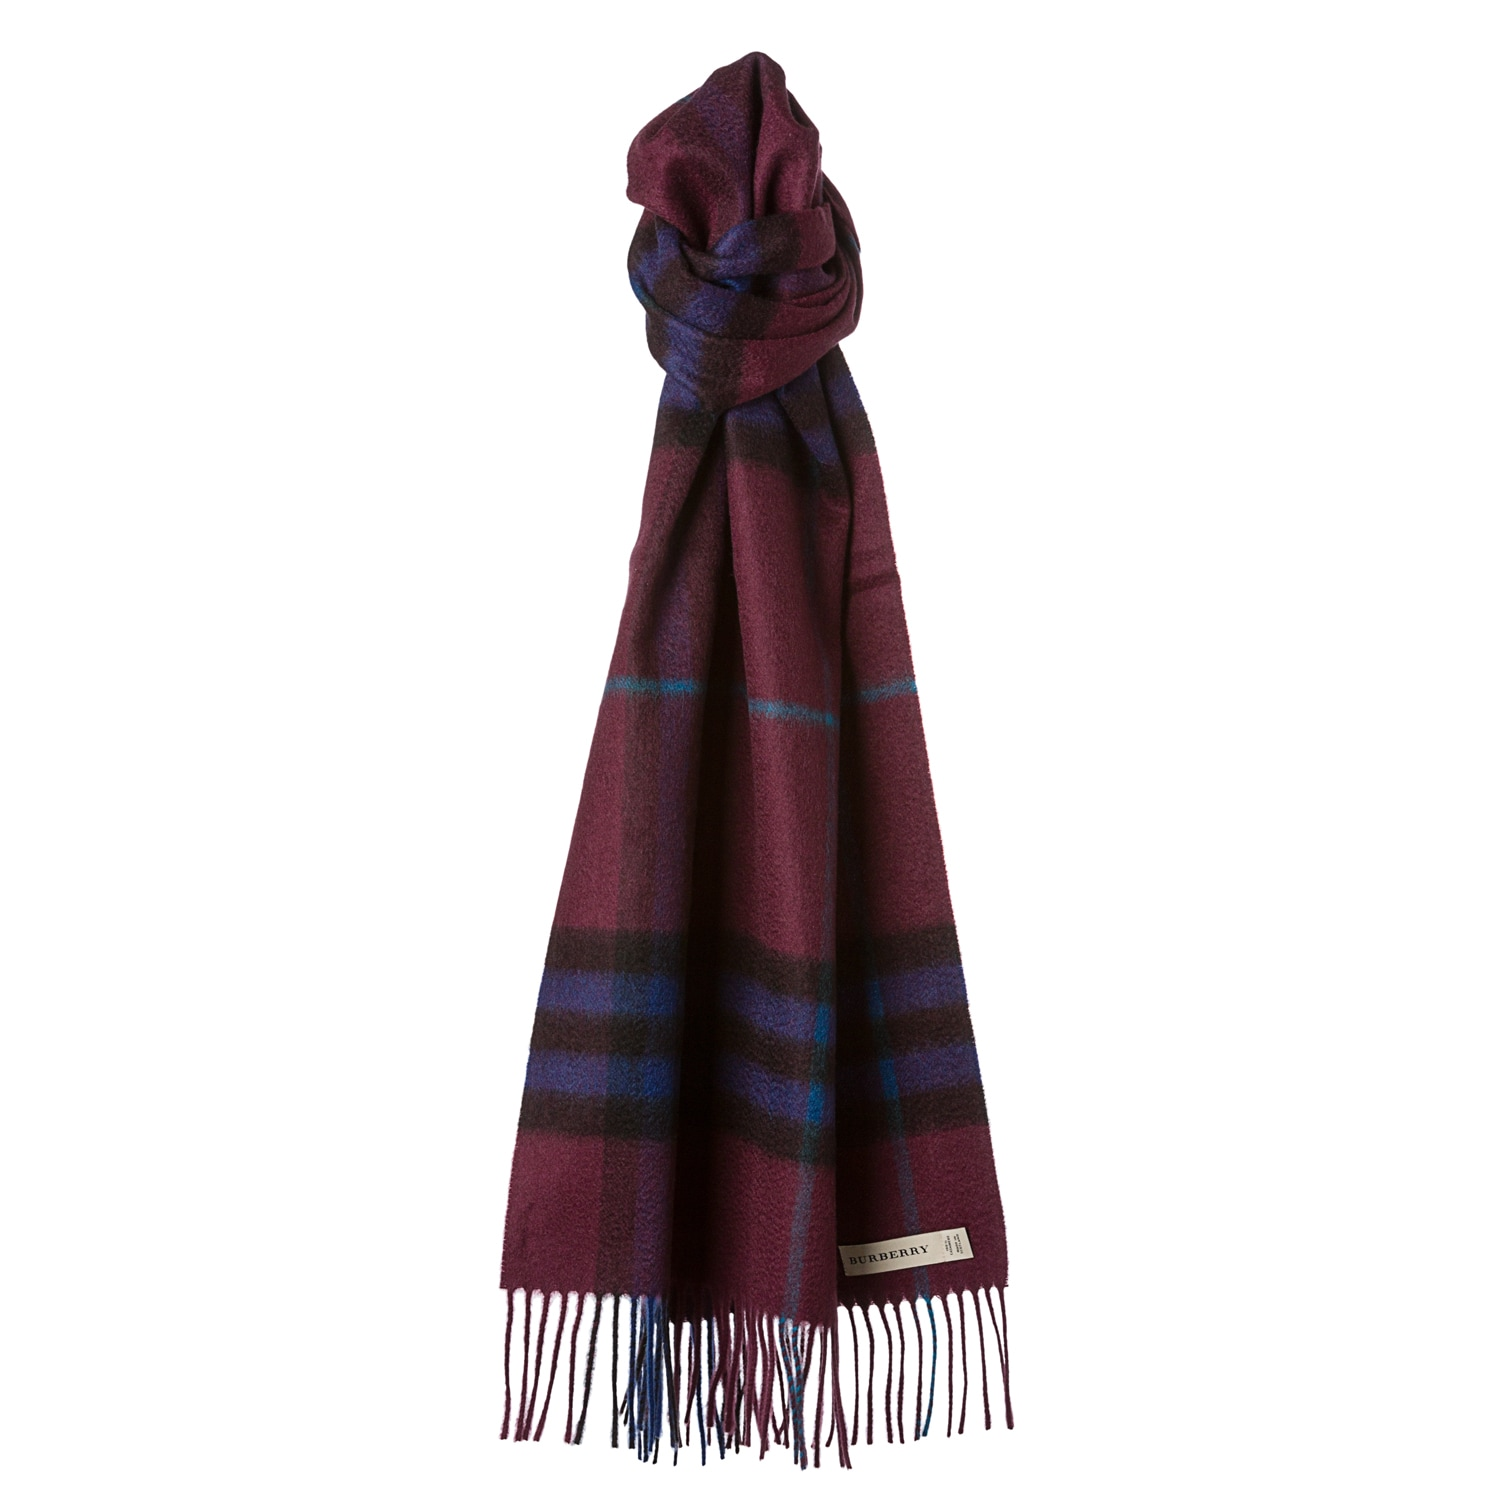 Burberry Burgundy Check Cashmere Scarf  JustCampus Cashmere Burberry Scarf